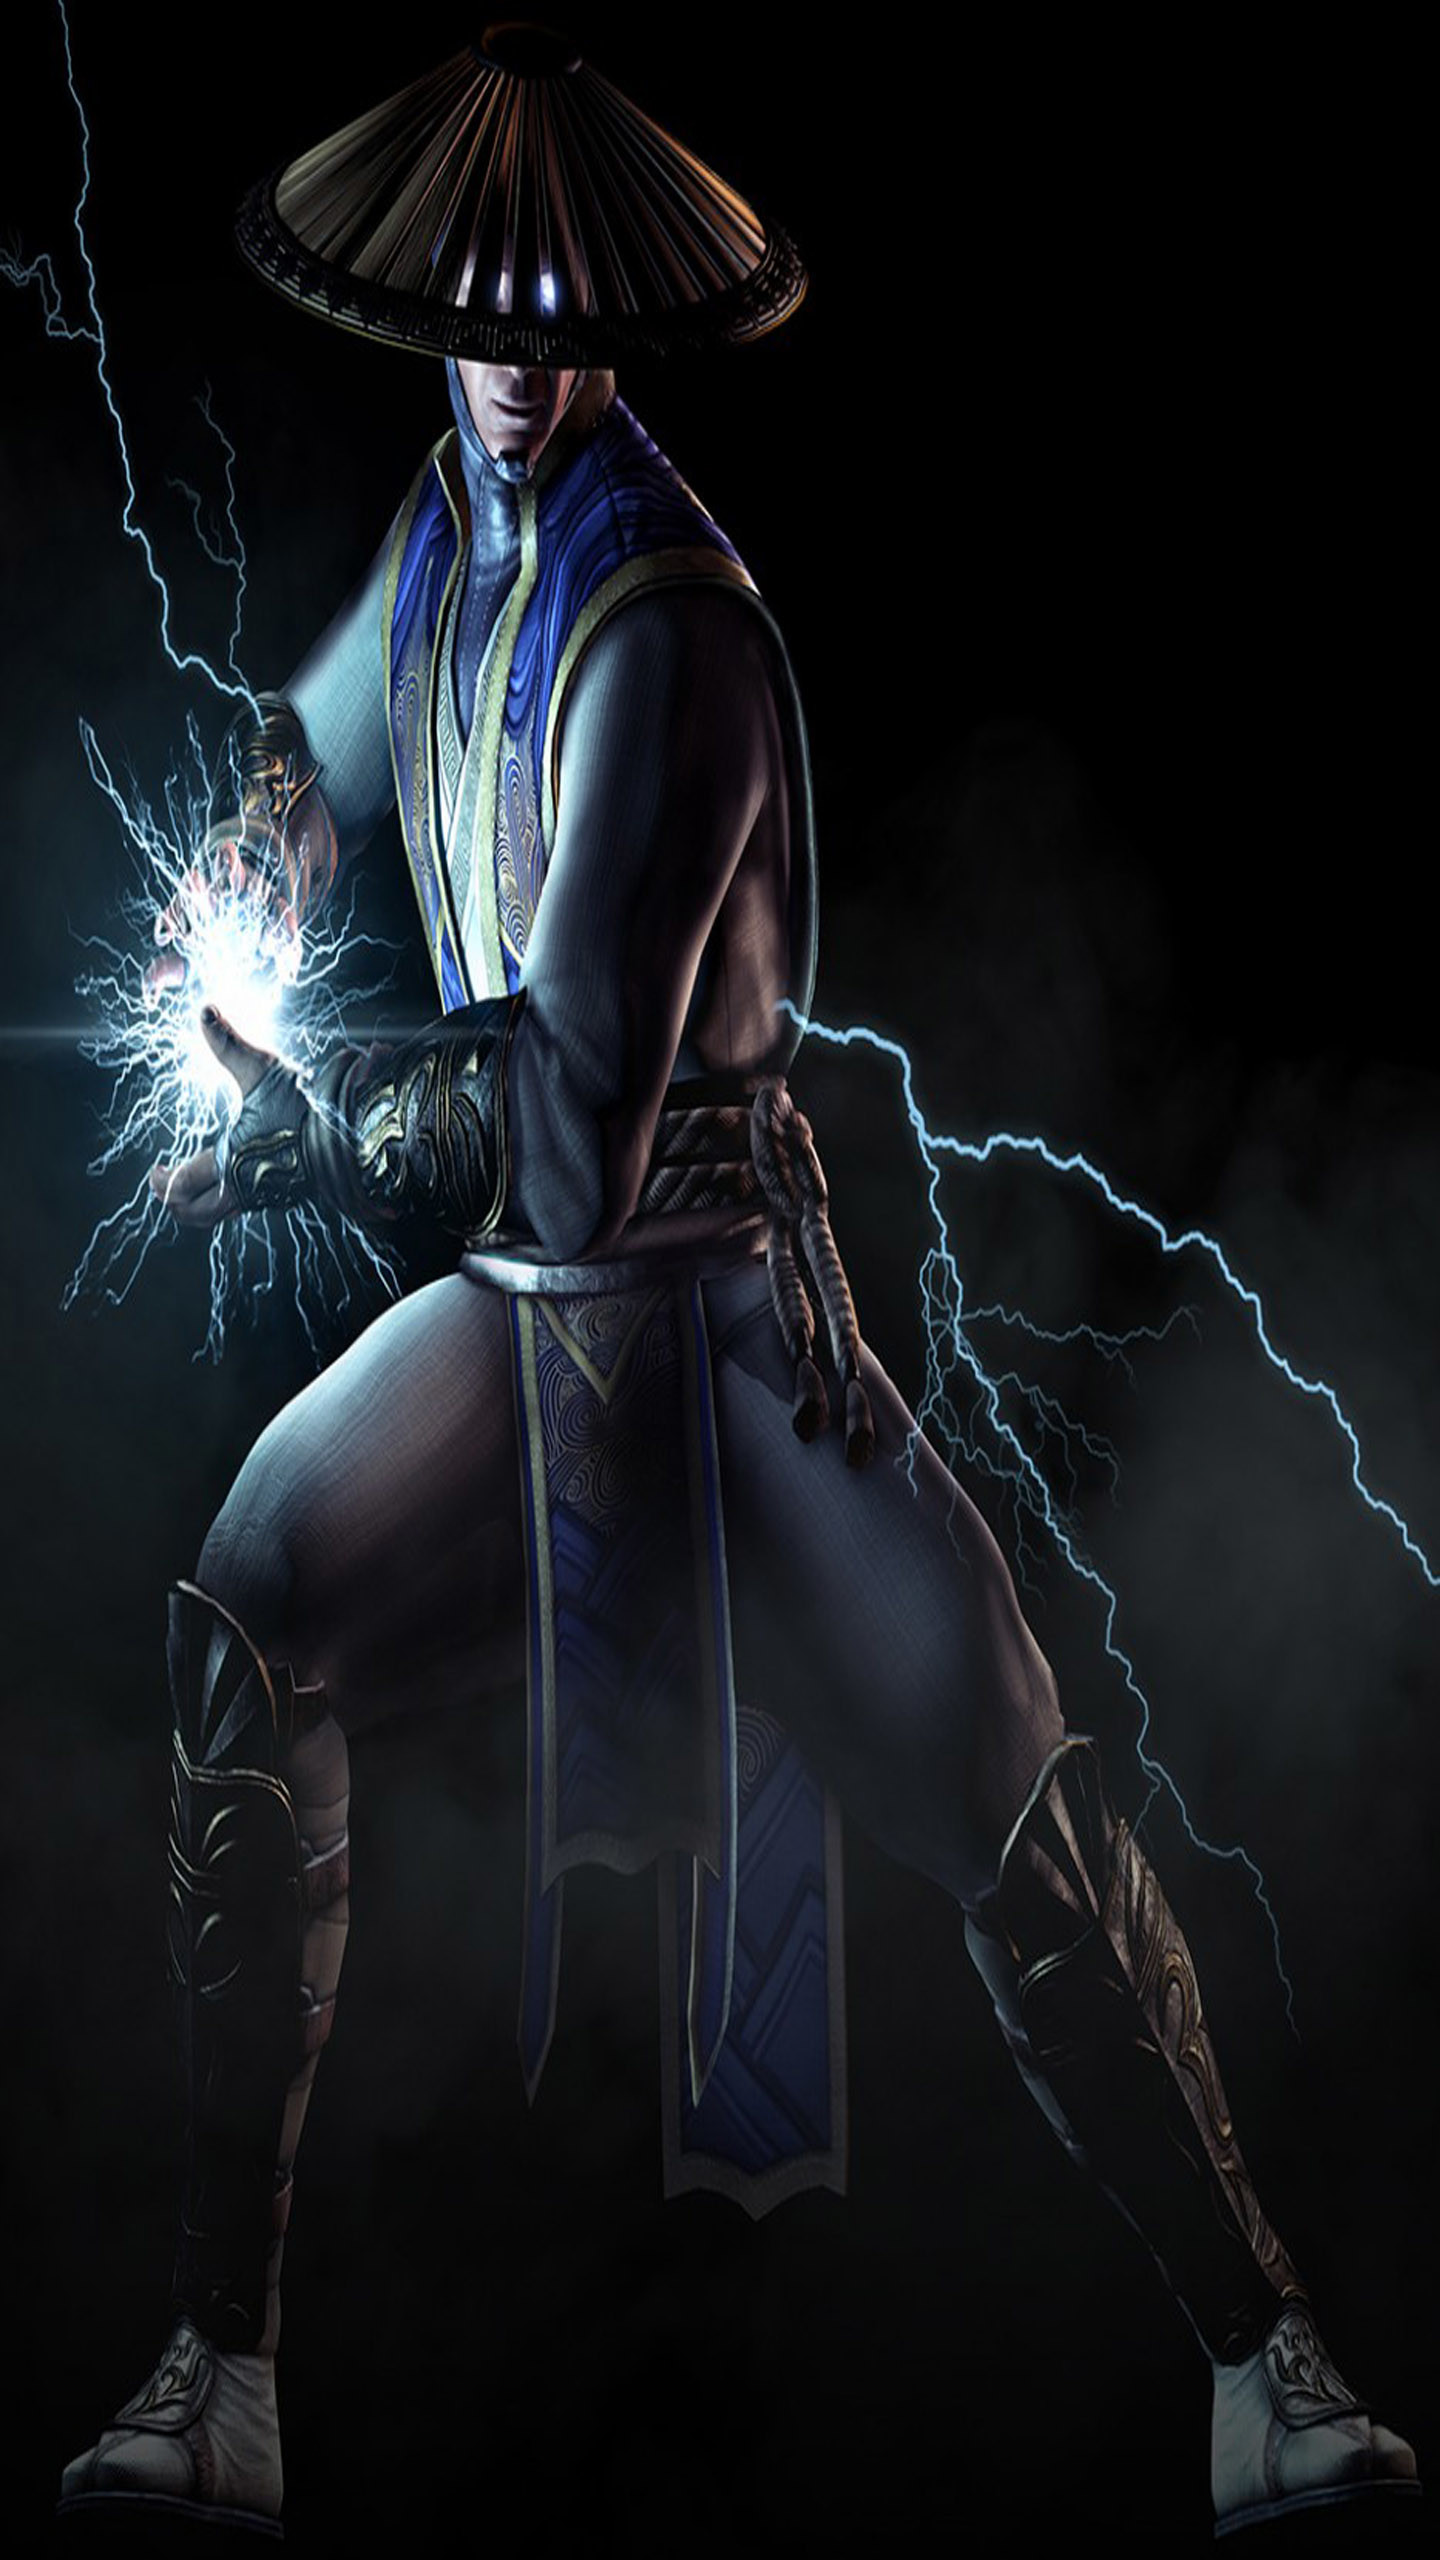 Mortal Kombat X Raiden Wallpaper ·① - photo#19